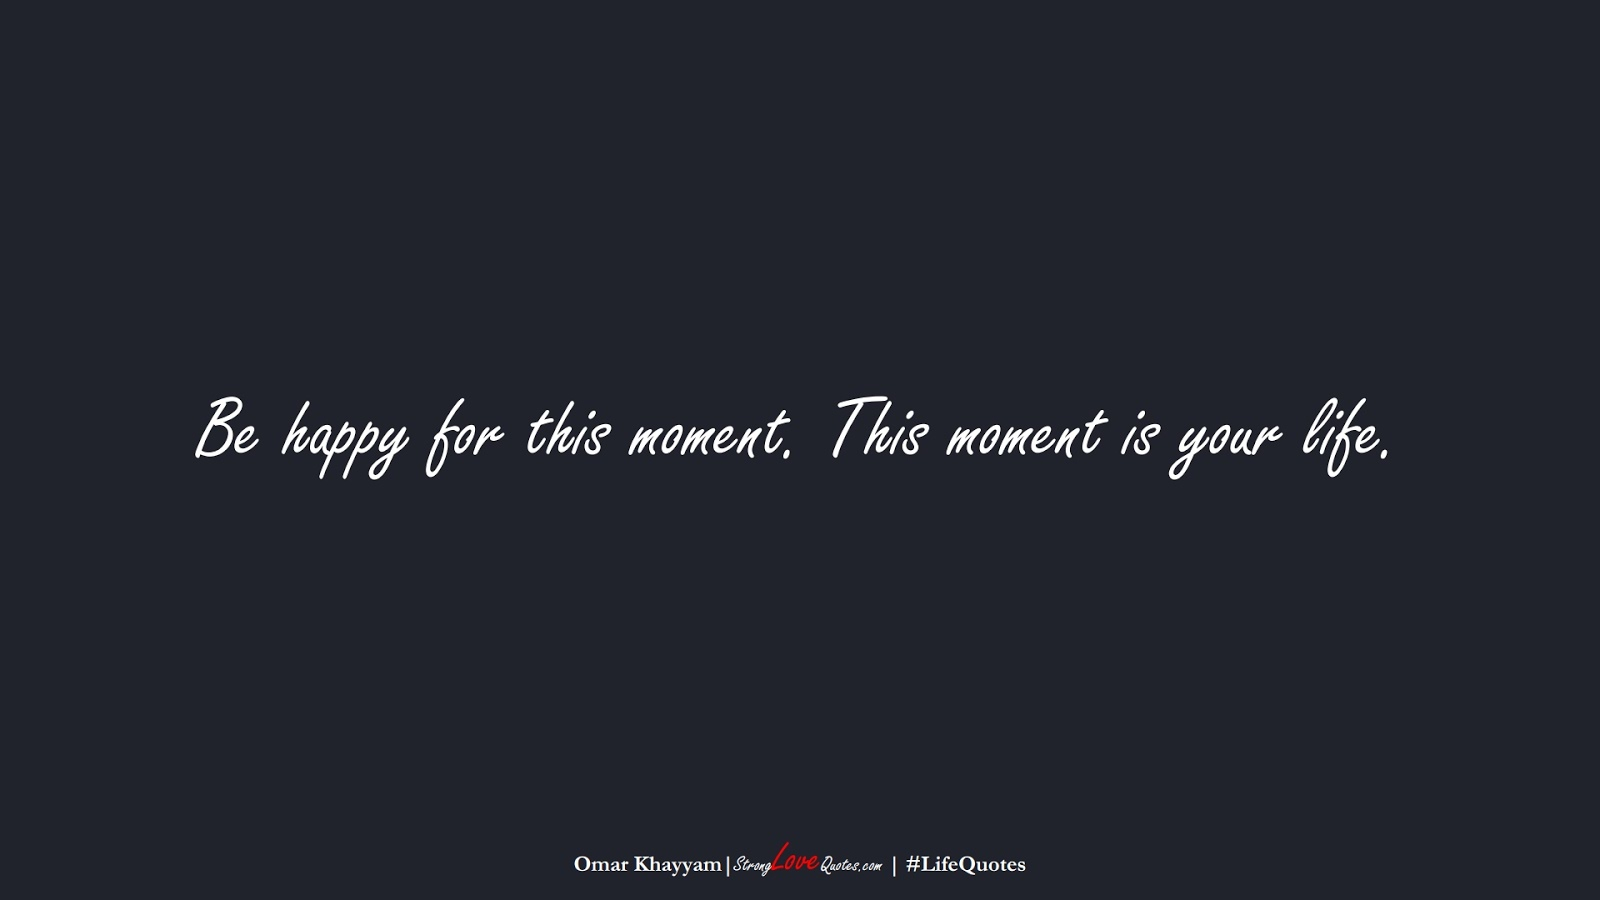 Be happy for this moment. This moment is your life. (Omar Khayyam);  #LifeQuotes